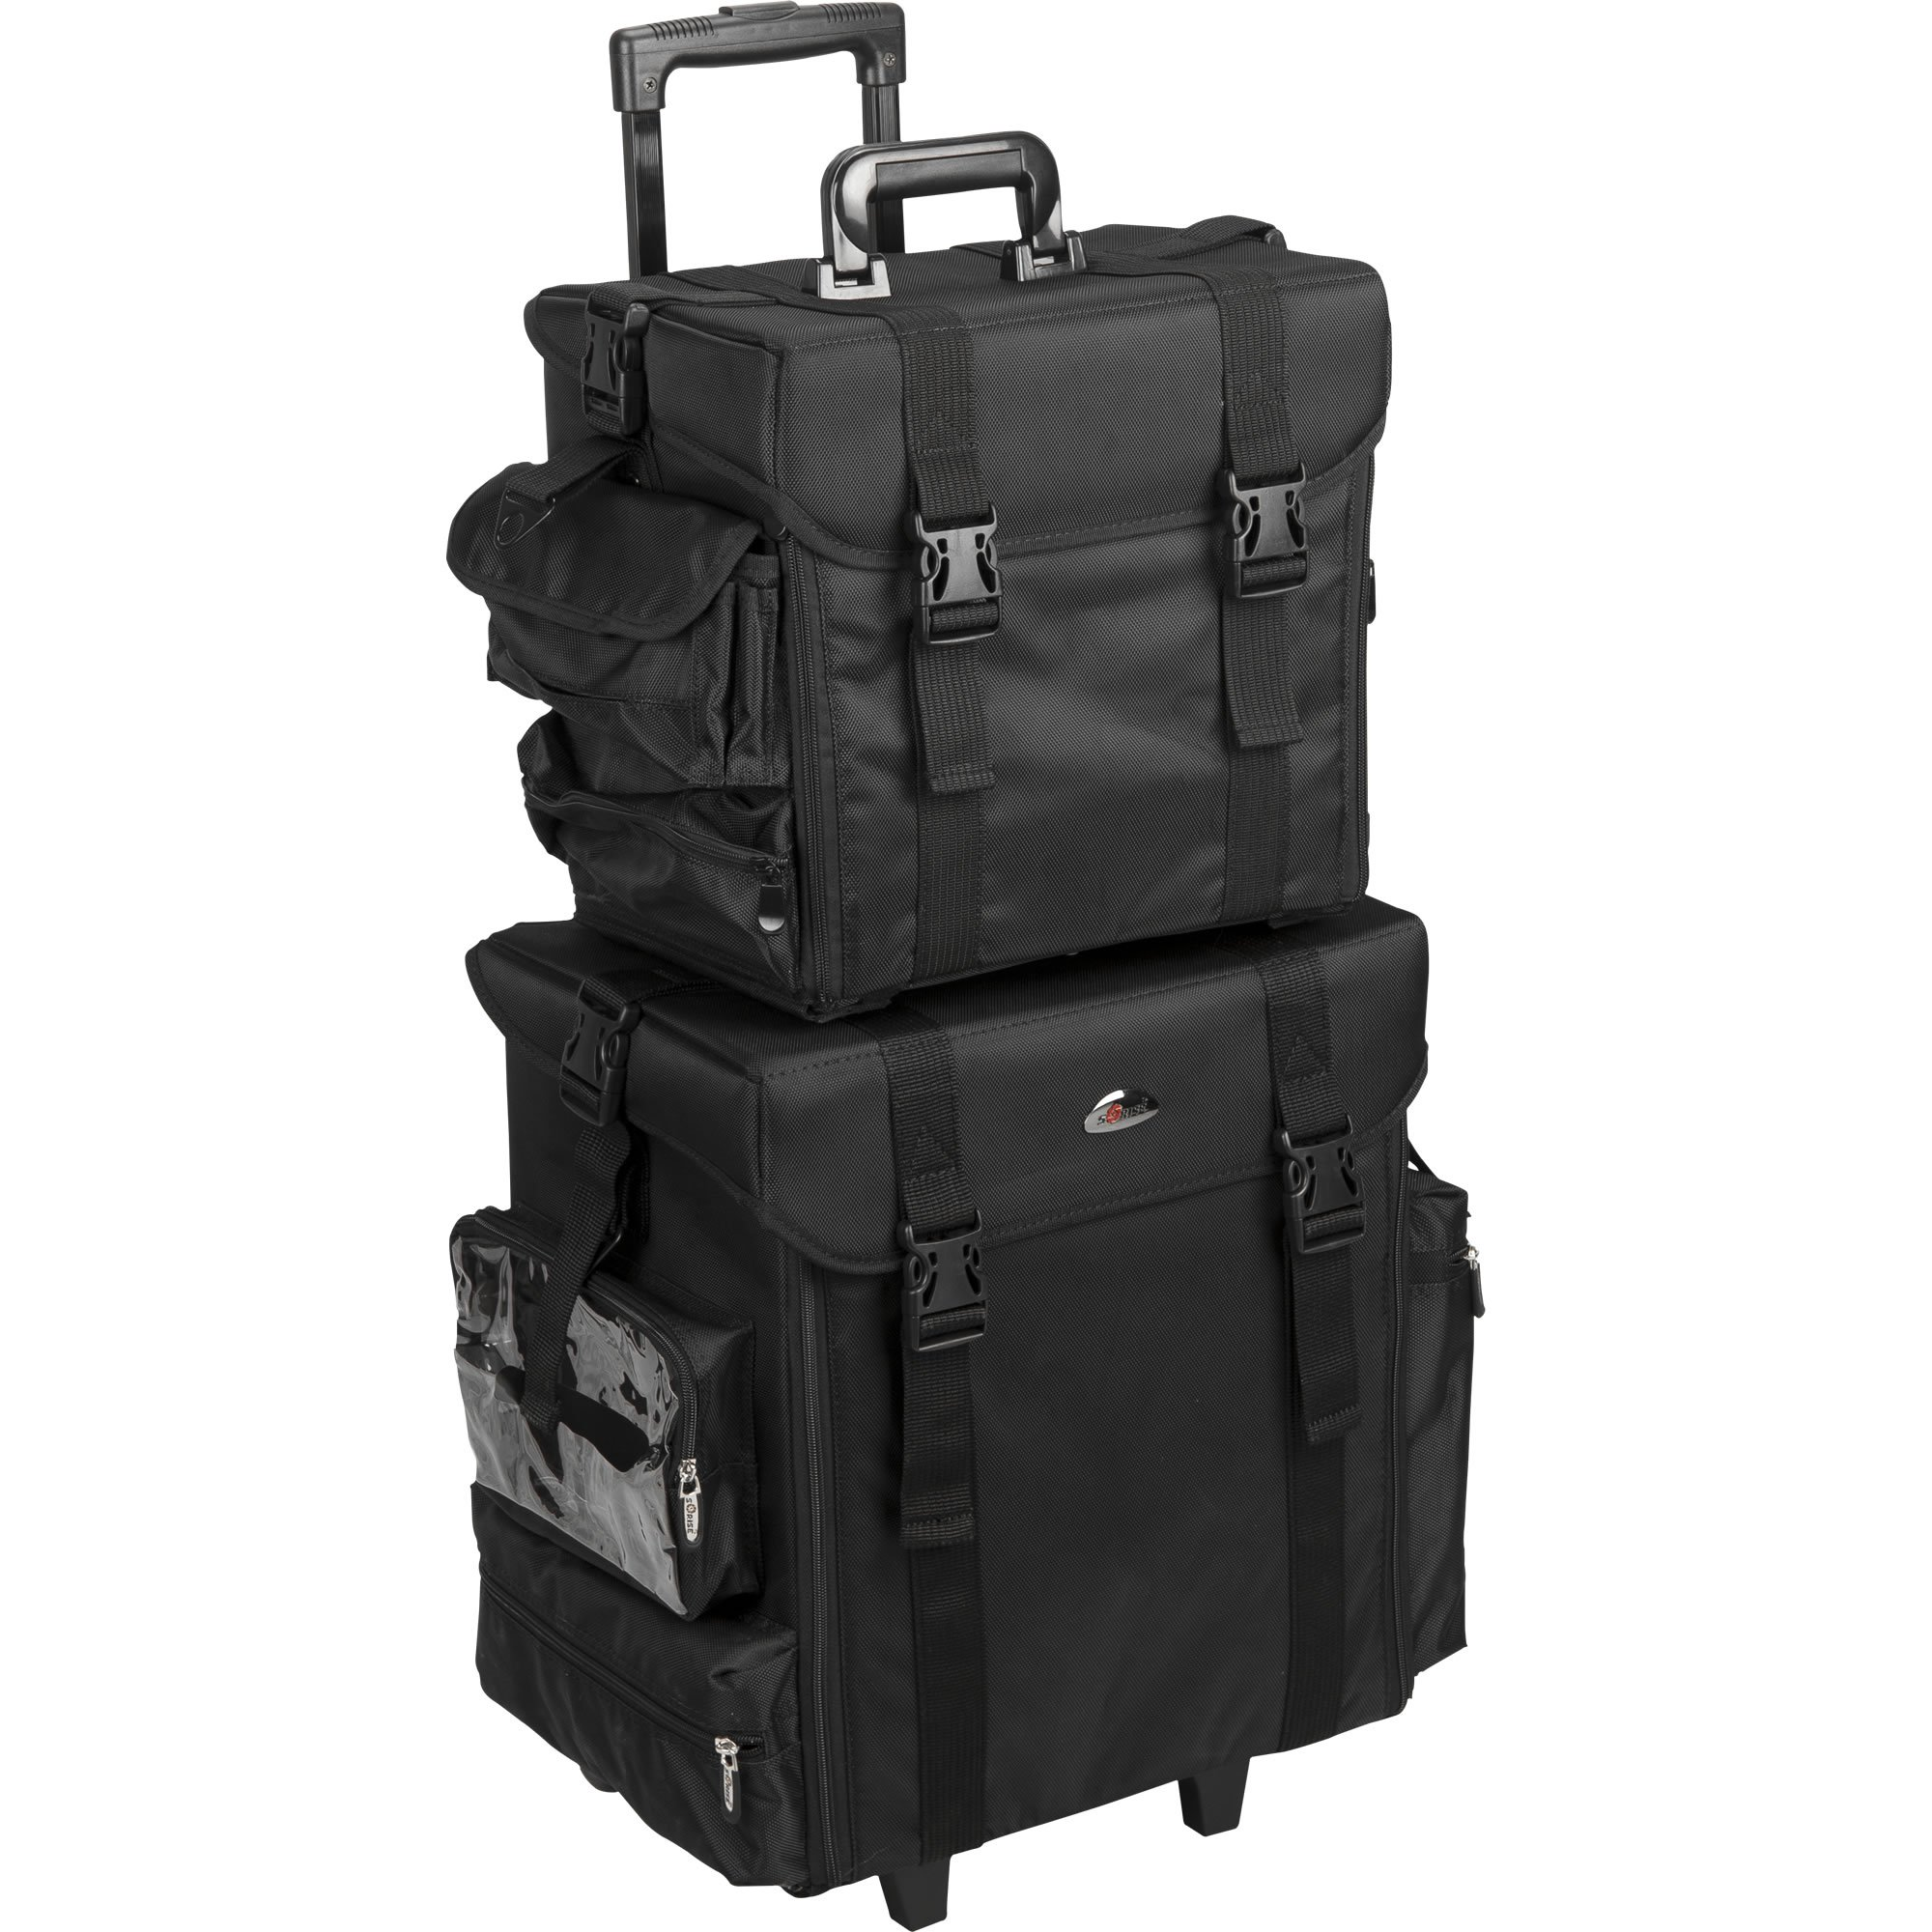 JustCase T5171 2-in-1 Soft Sided Professional Rolling Trolley Makeup Artist Cosmetic Case, Black Nylon by JustCase